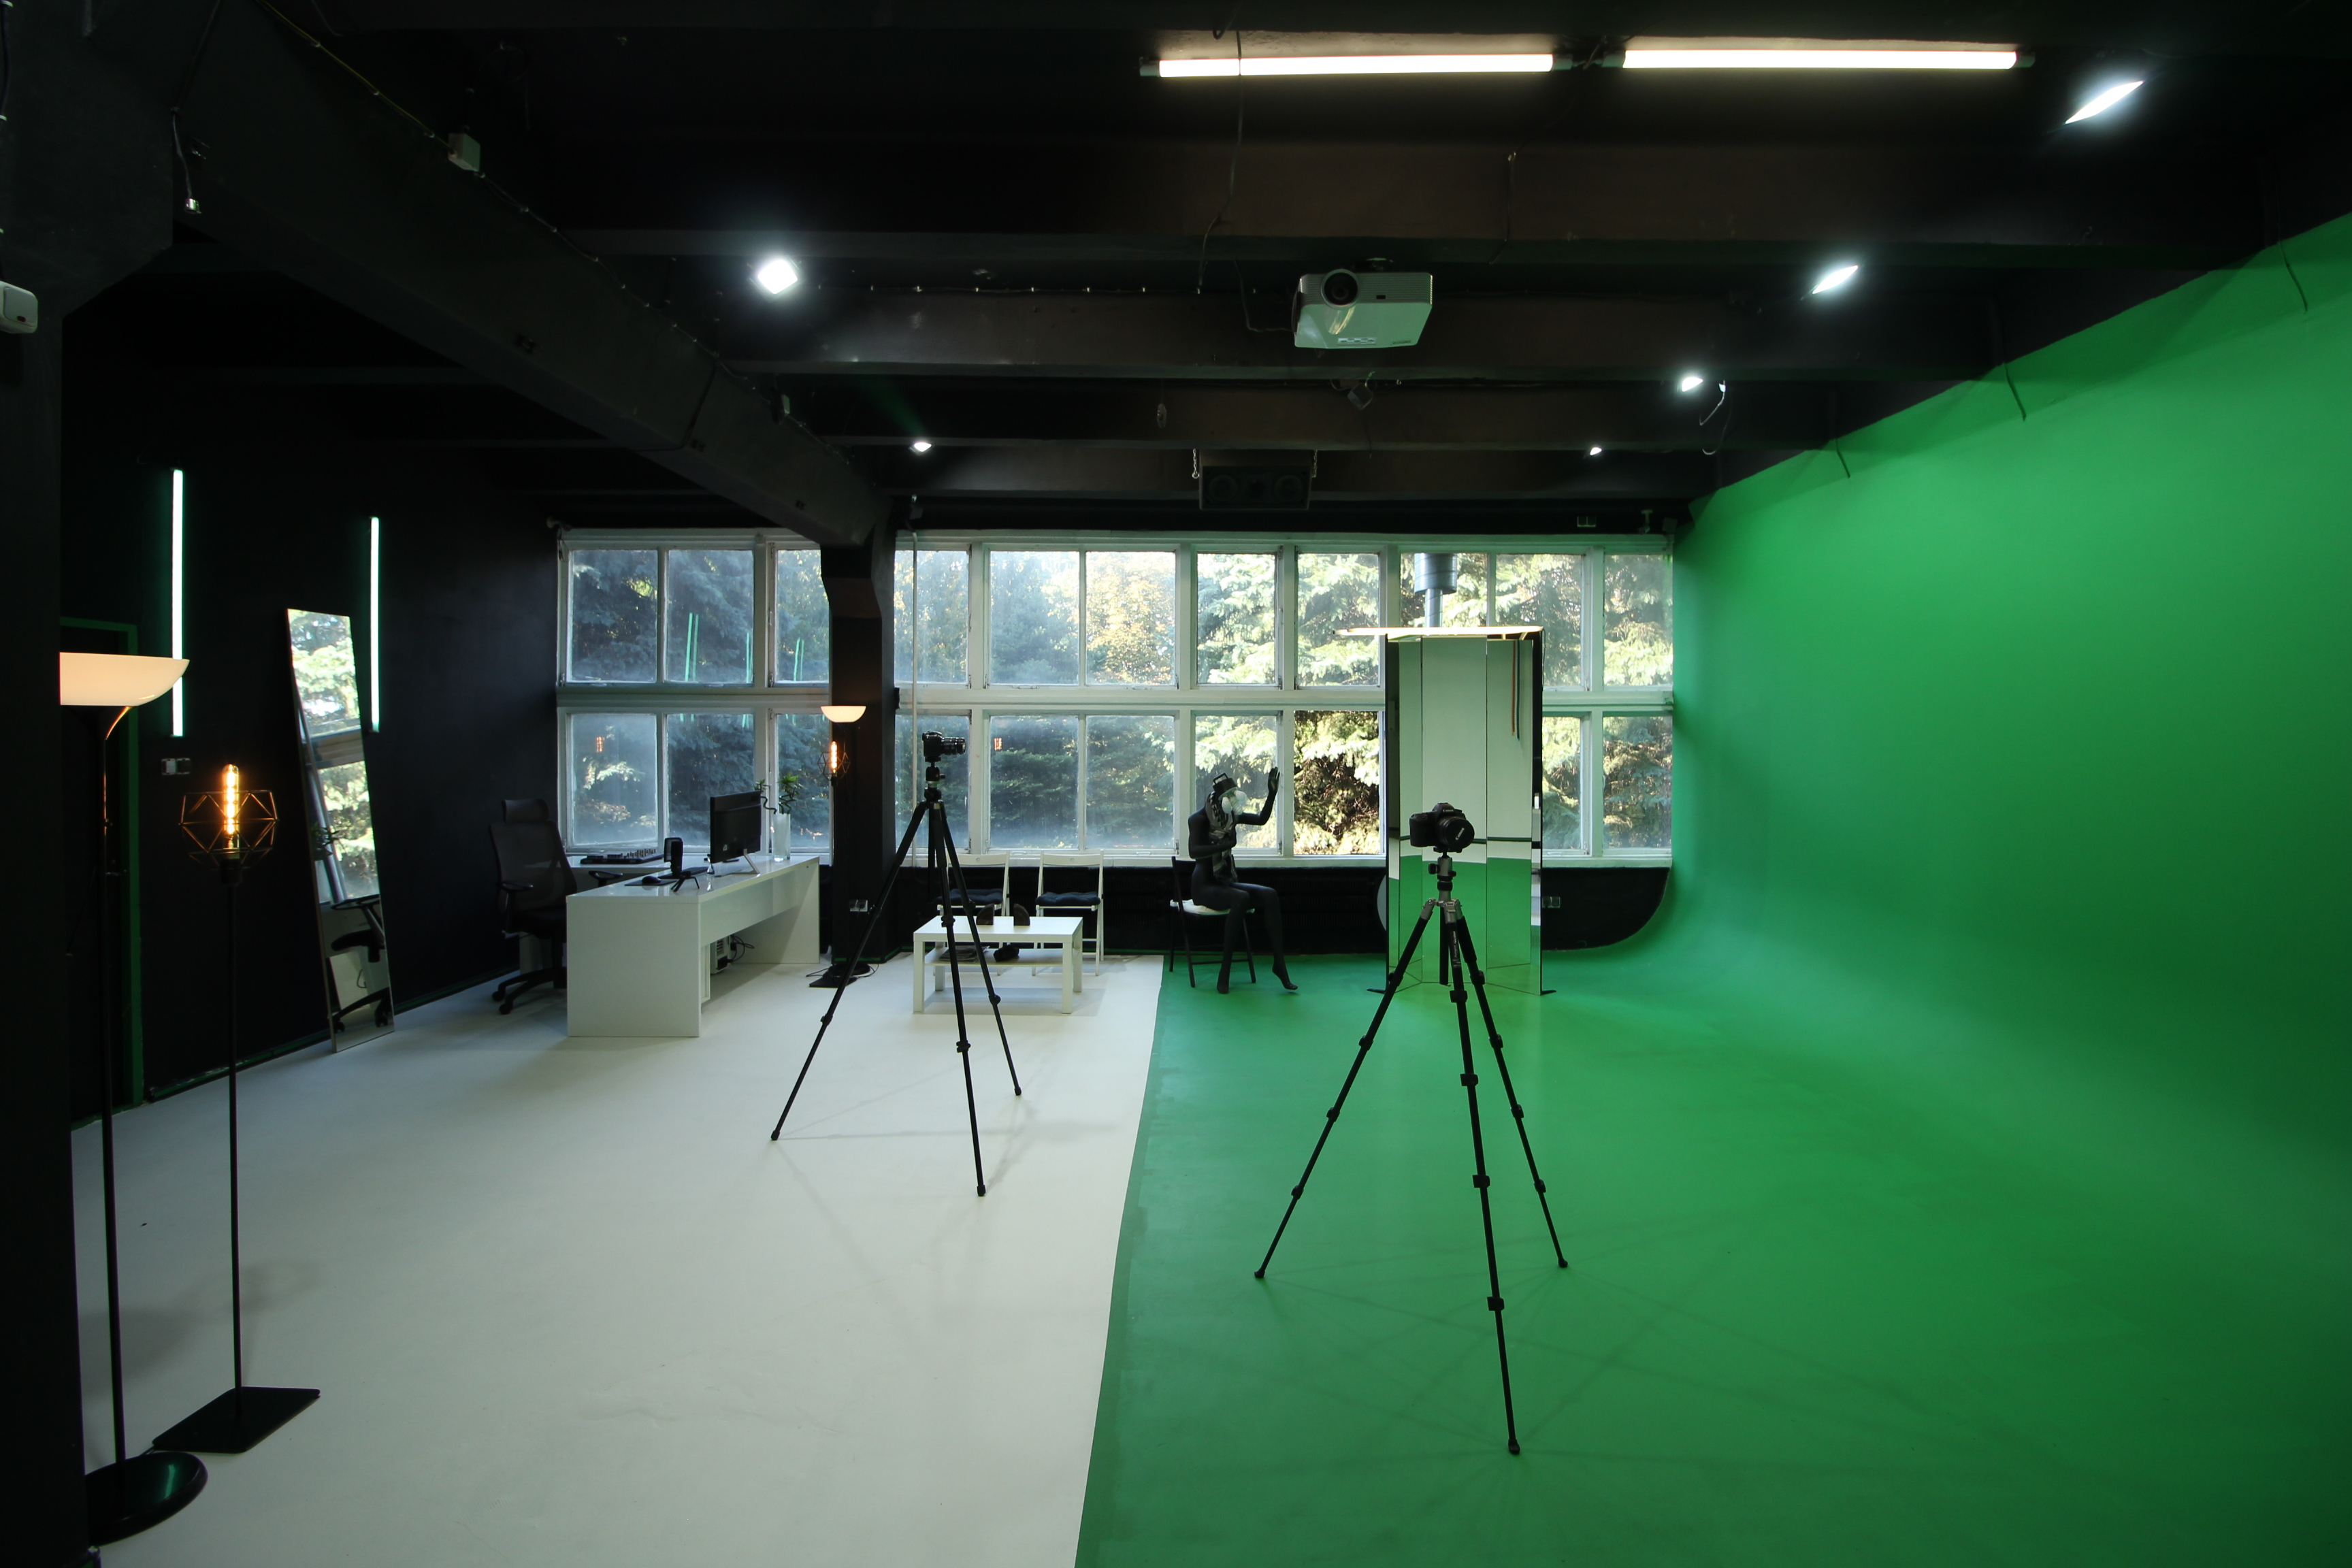 chromakey green screen studio